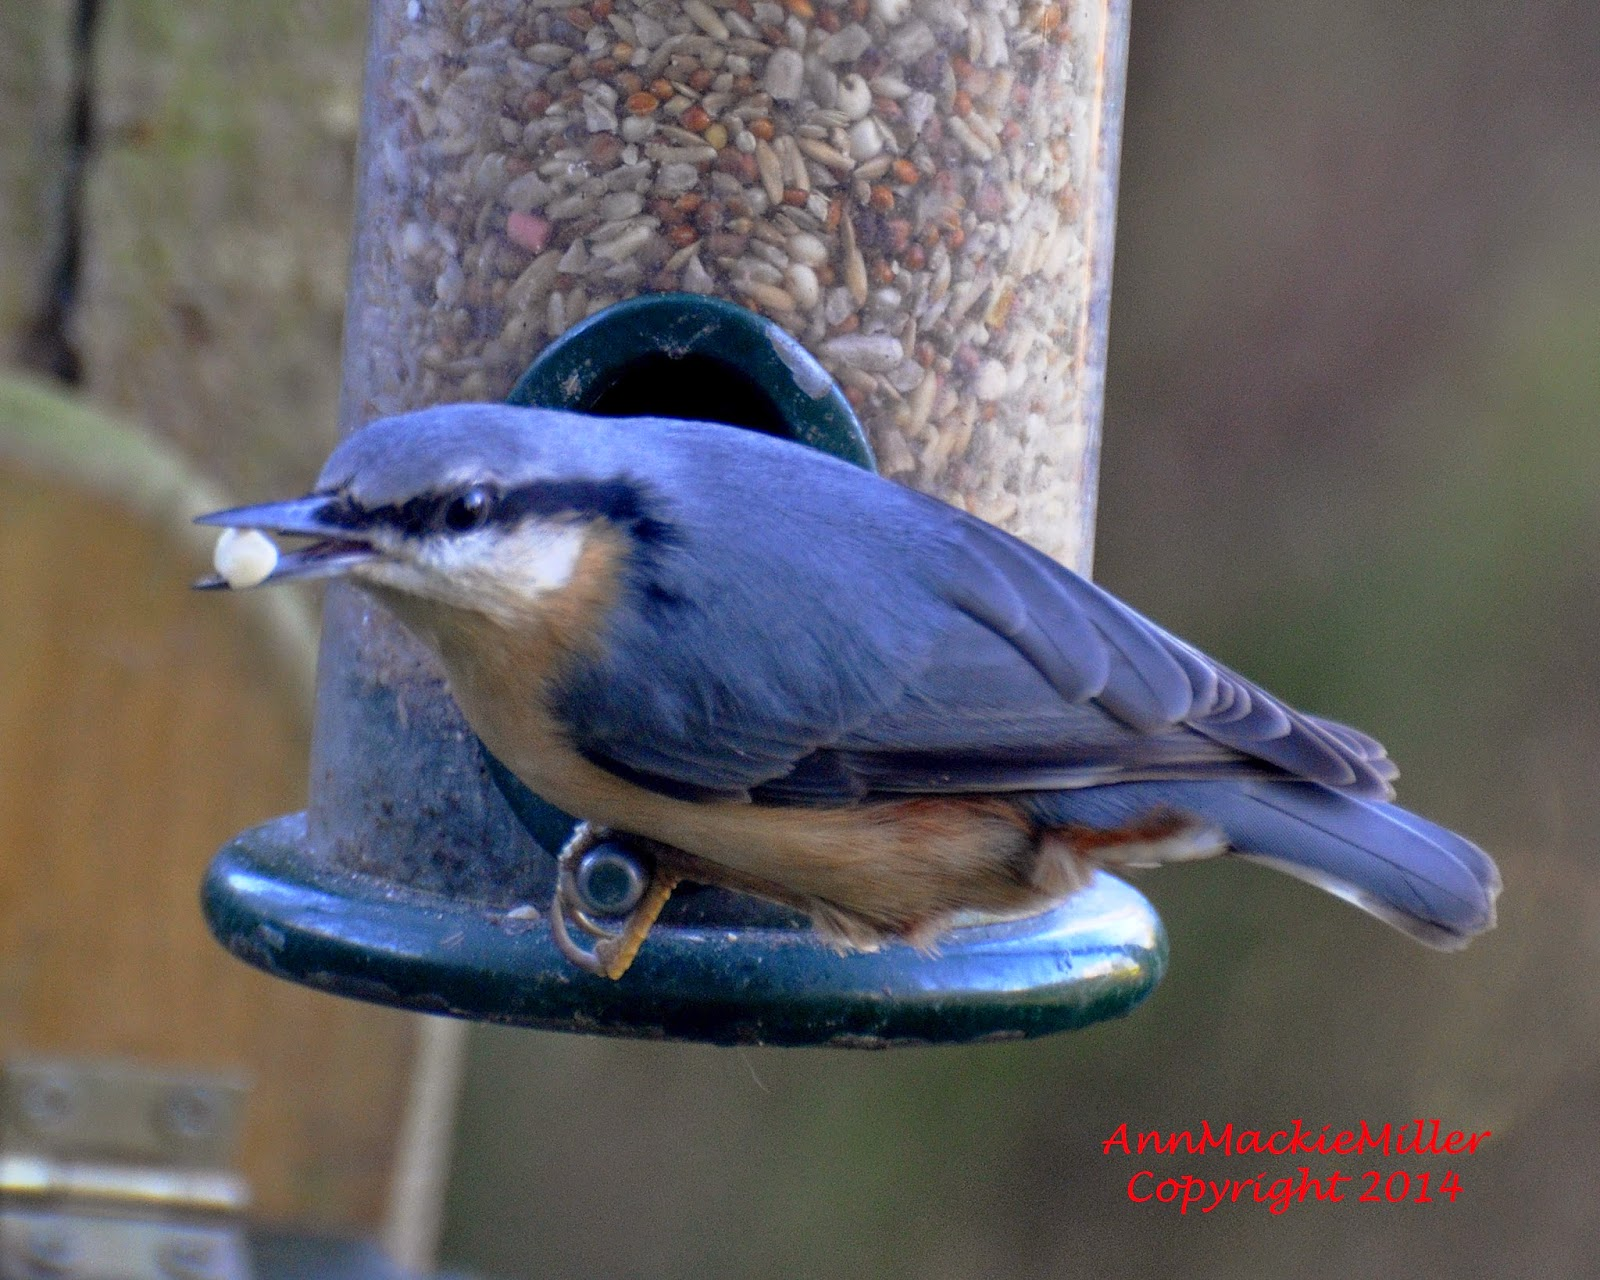 nuthatch on garden feeder with seed in its beak